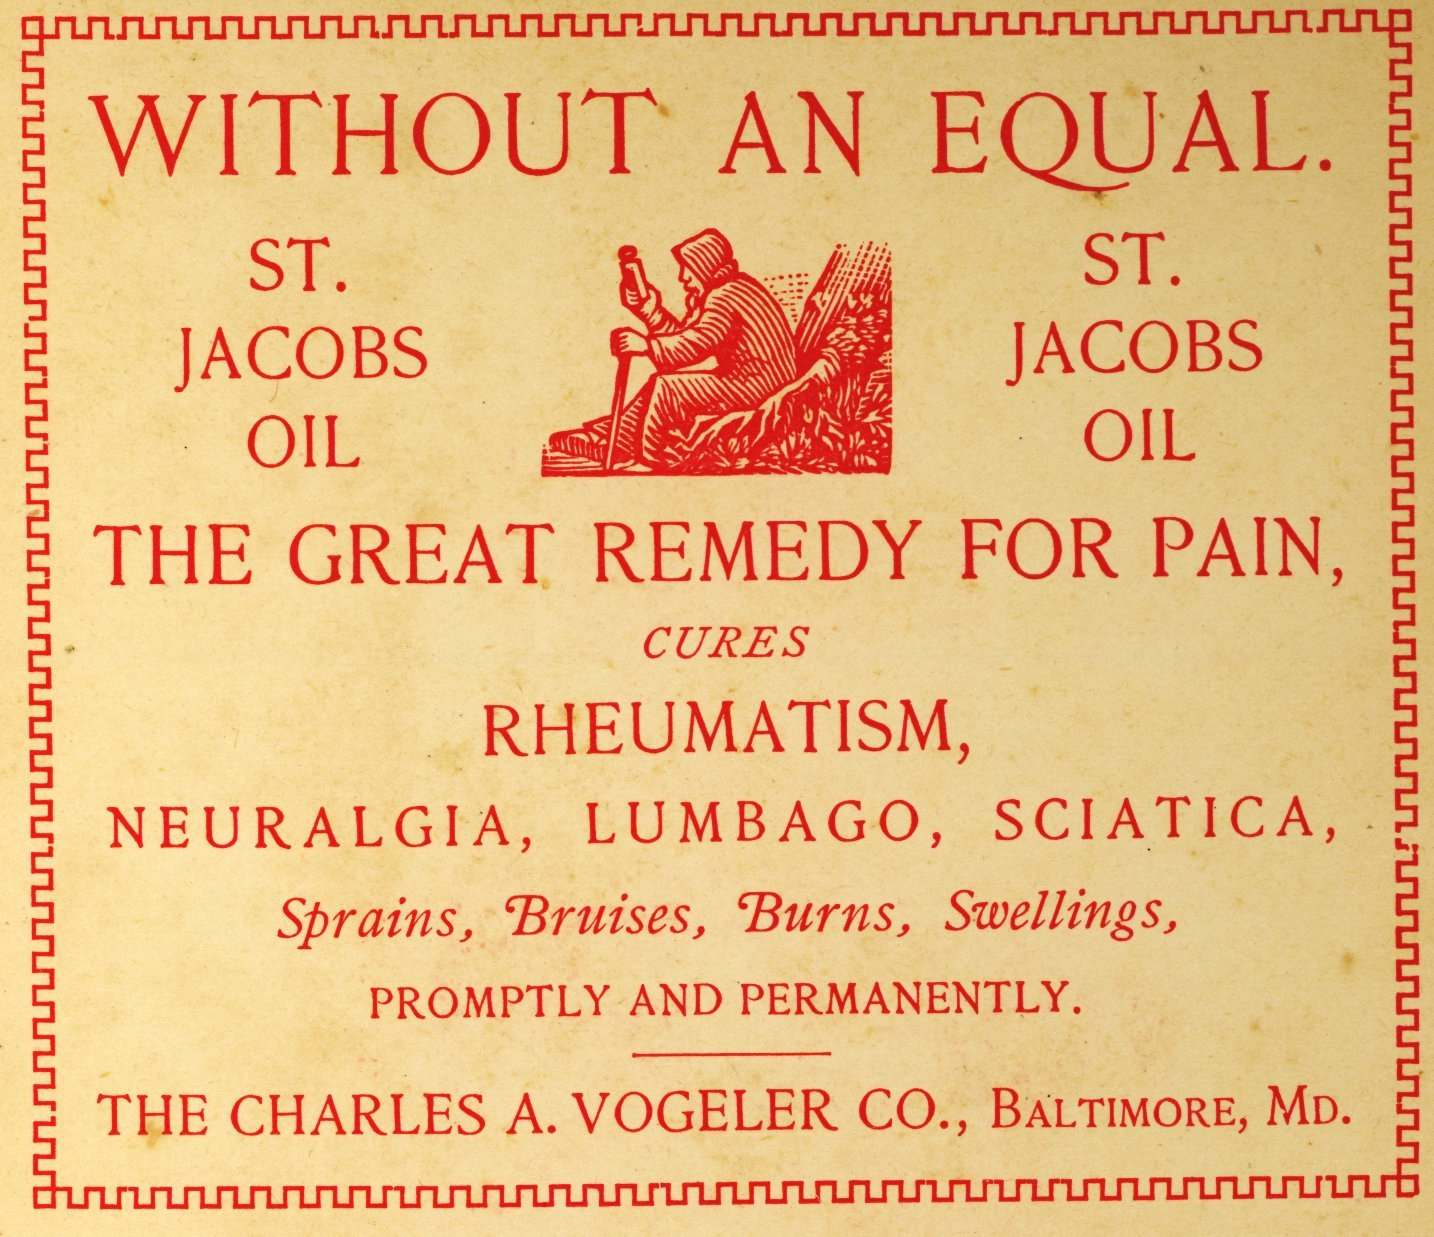 St. Jacobs Snake Oil, Credit: Wikimedia Commons